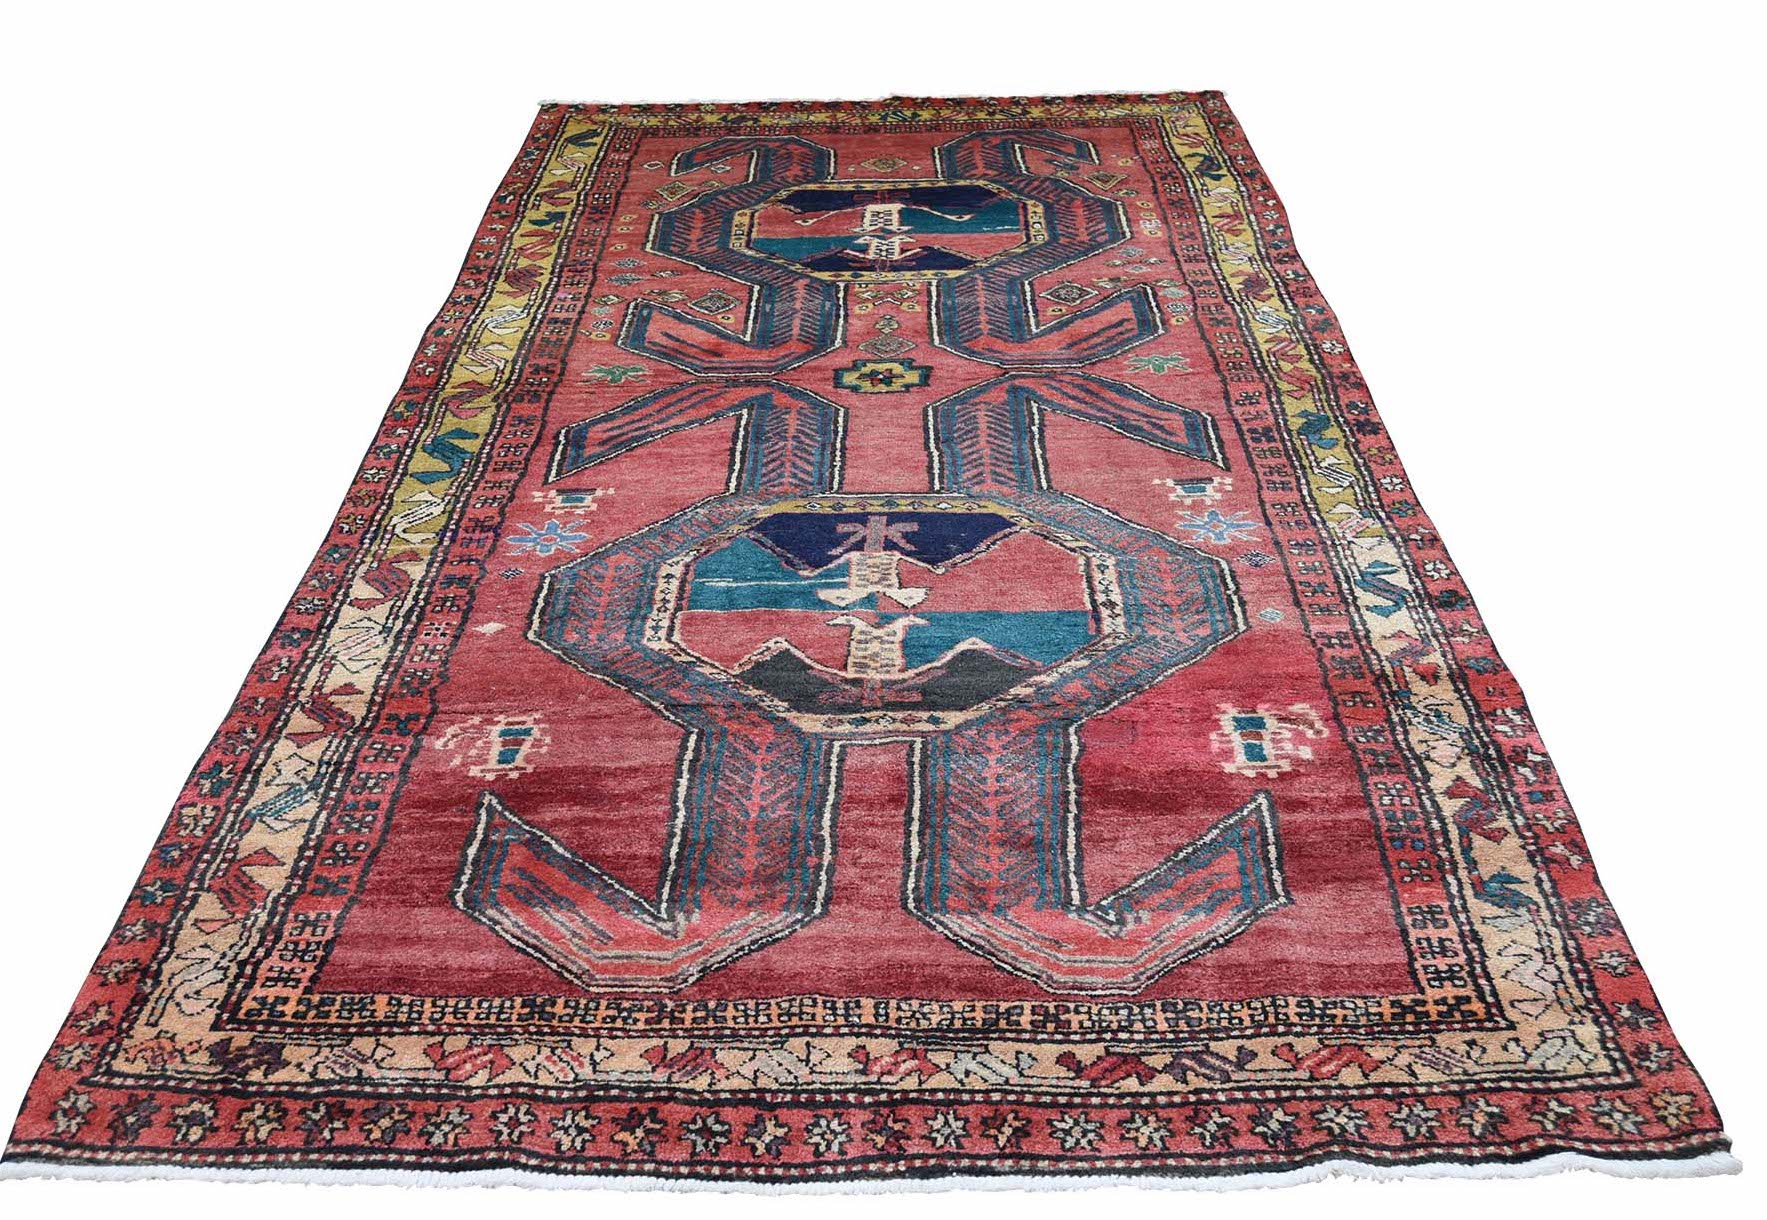 Shah only $325 4'6x10' Vintage Tribal Persian Azari Hand-Knotted Oriental Village Rug